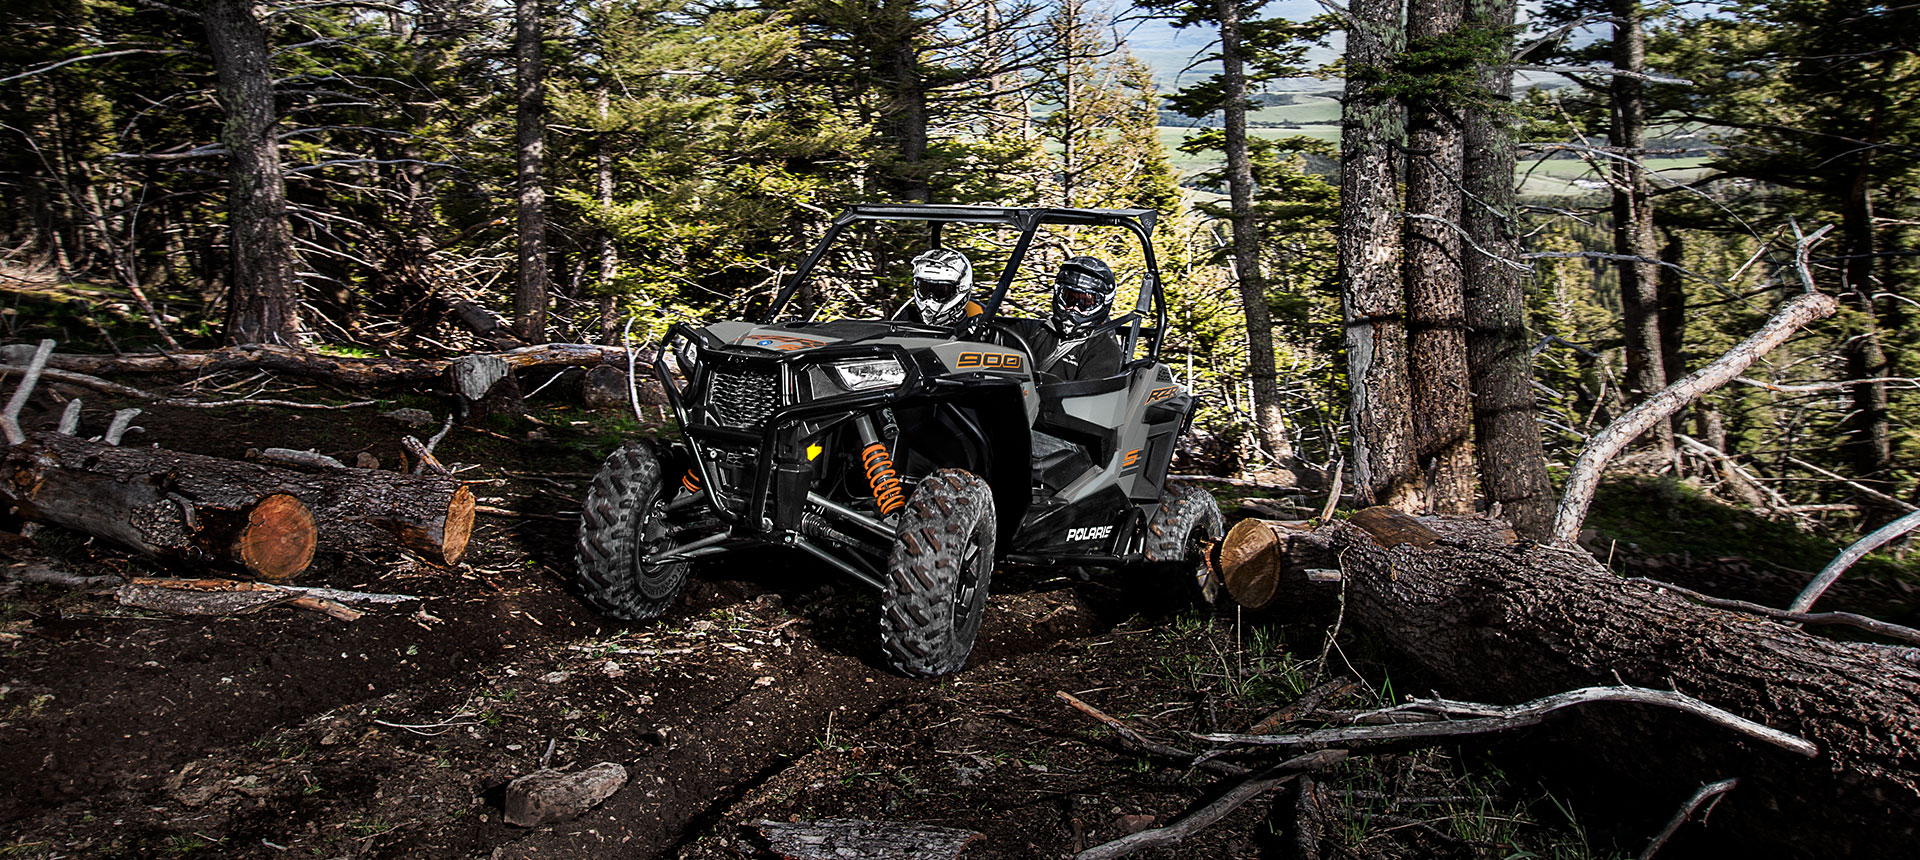 2019 Polaris RZR S 900 in Rapid City, South Dakota - Photo 2